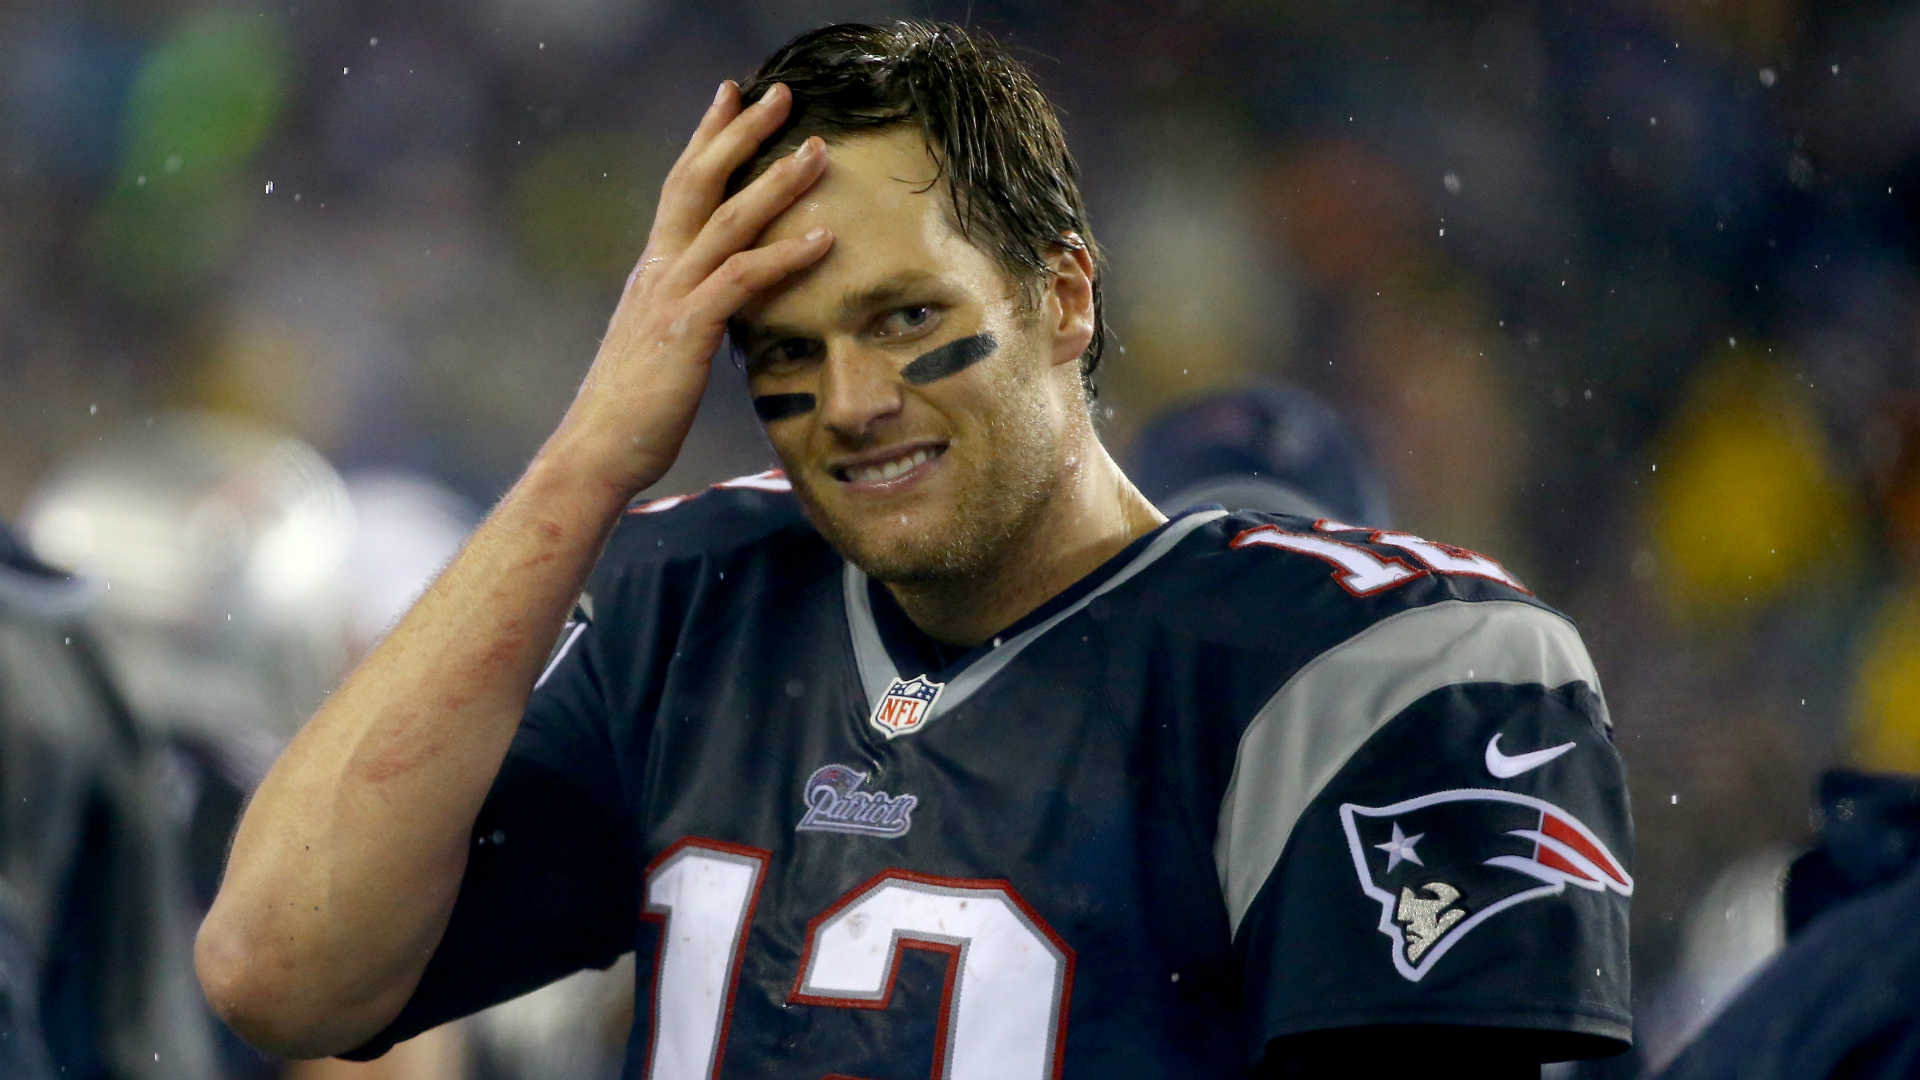 Tom Brady's suspension upheld, Deflategate keeps betting market guessing